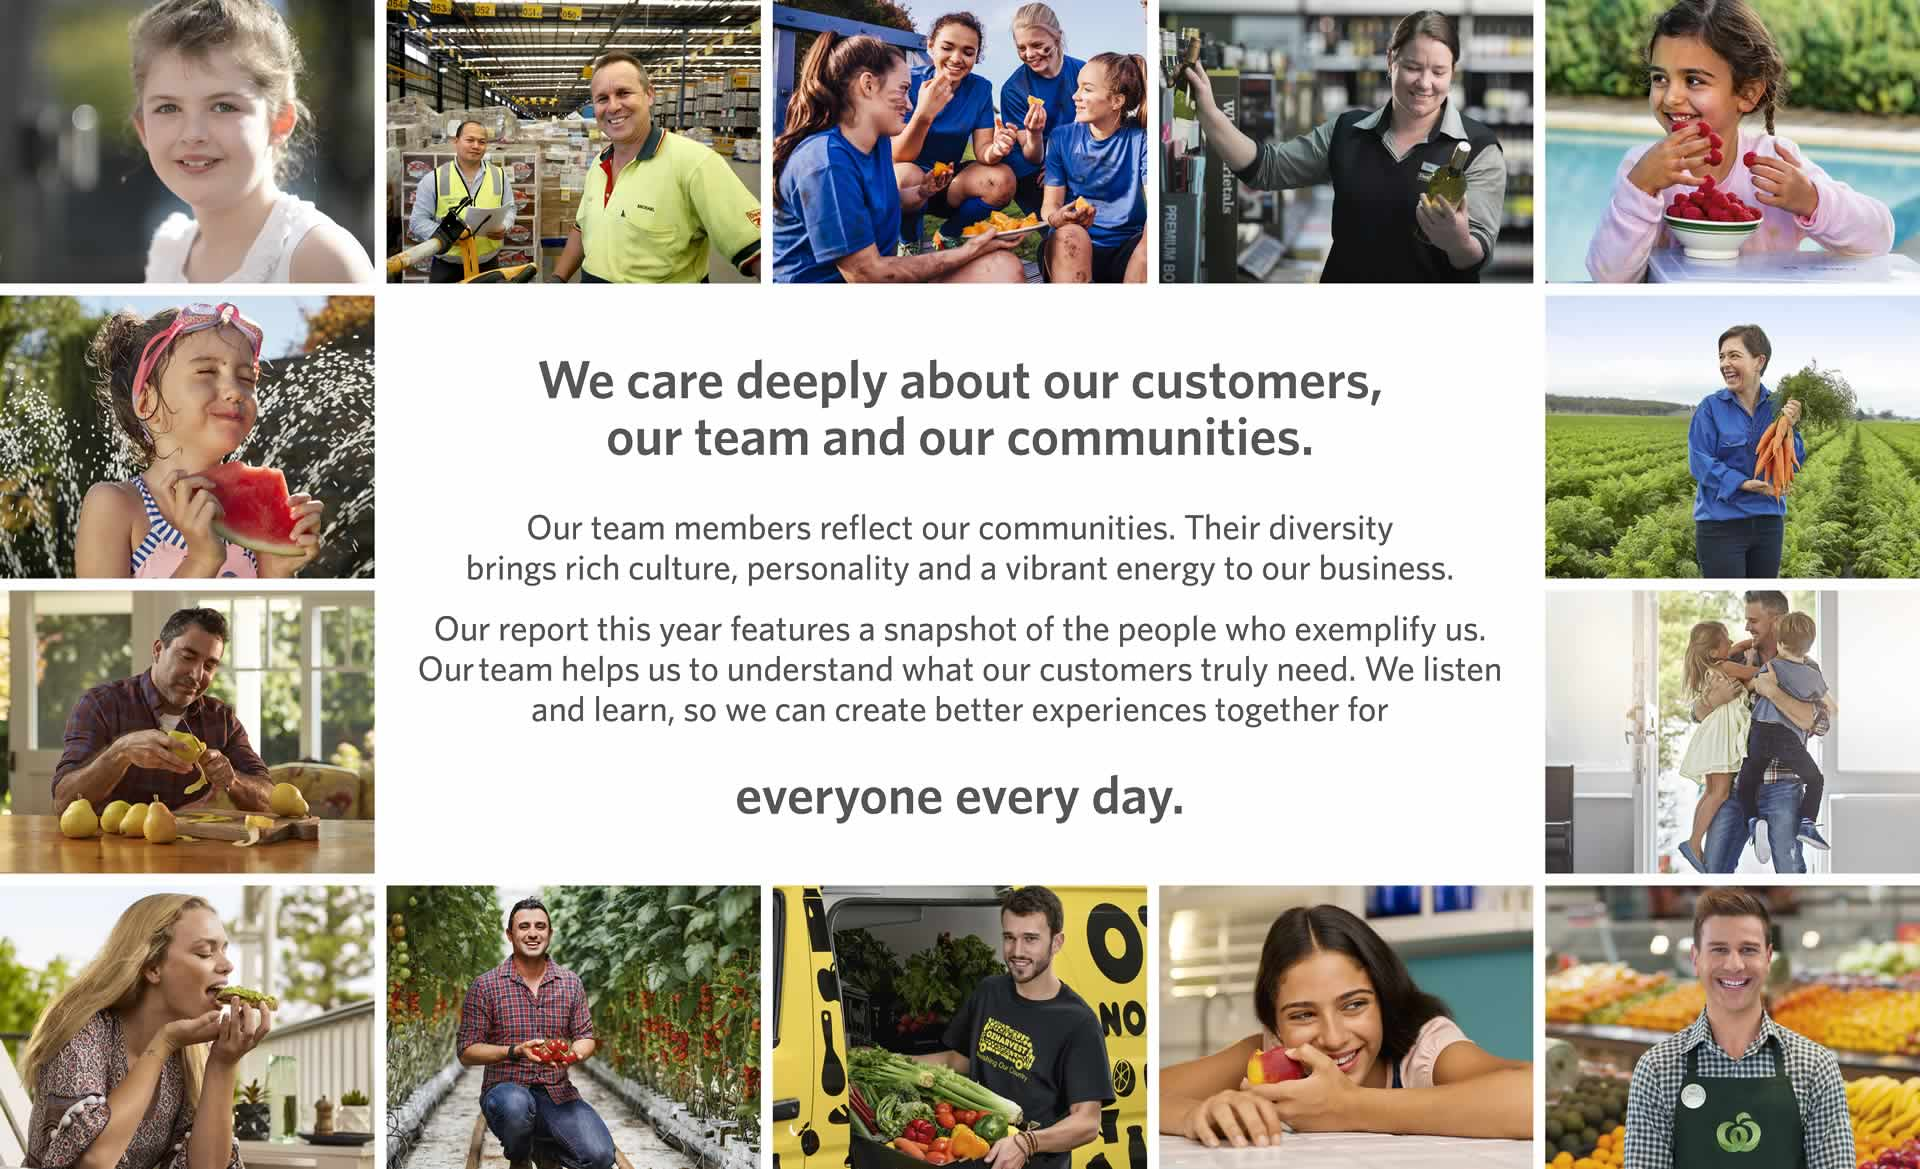 we care deeply about our customers